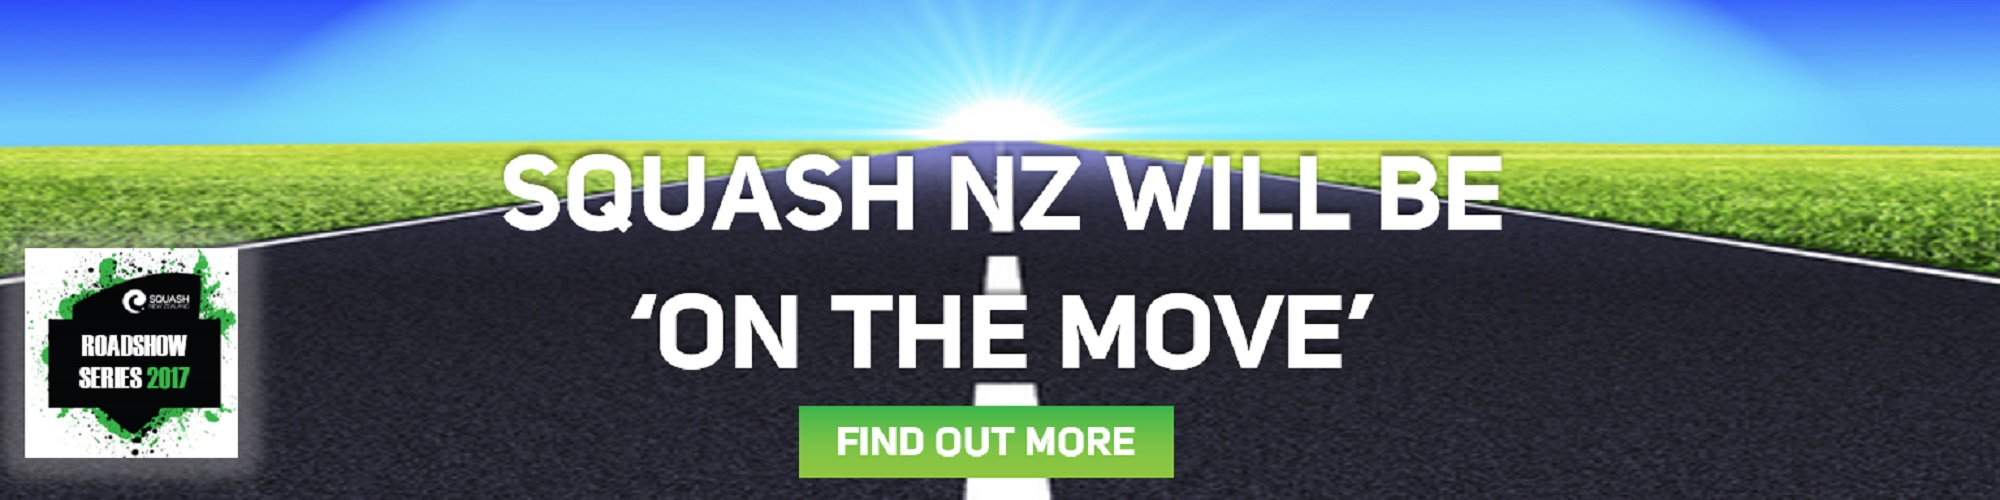 Squash NZ 'On the Move' 2017